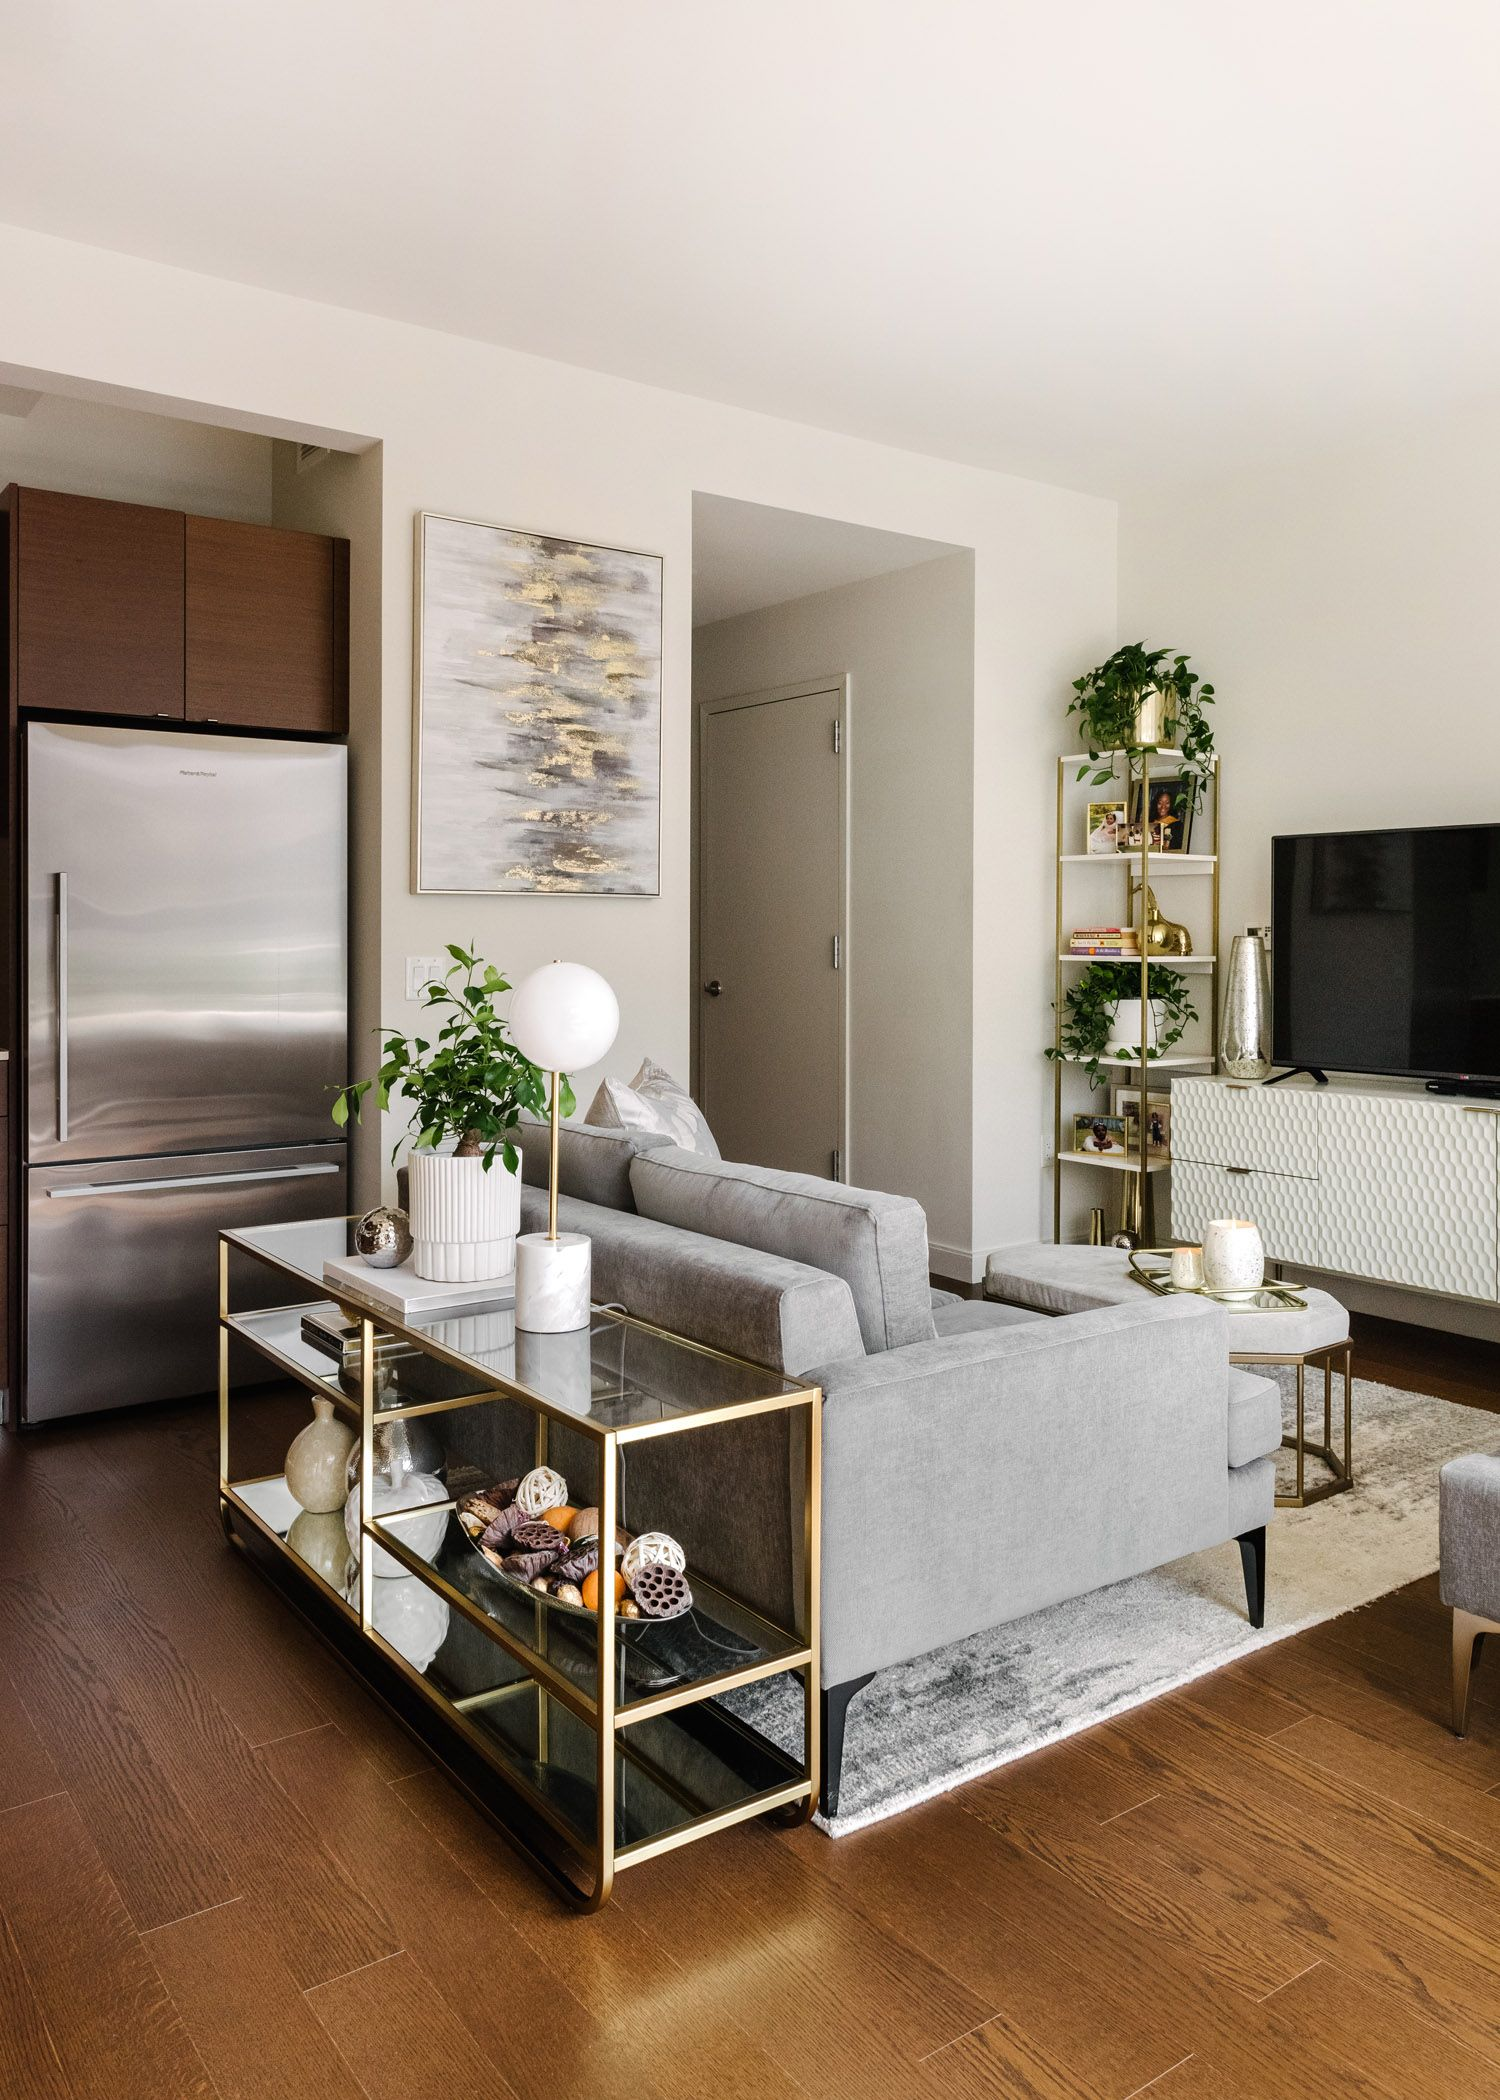 At Home with Design Crew: Neutral Meets Glam in a Small-Space Studio Apartment in NYC - Front + Main